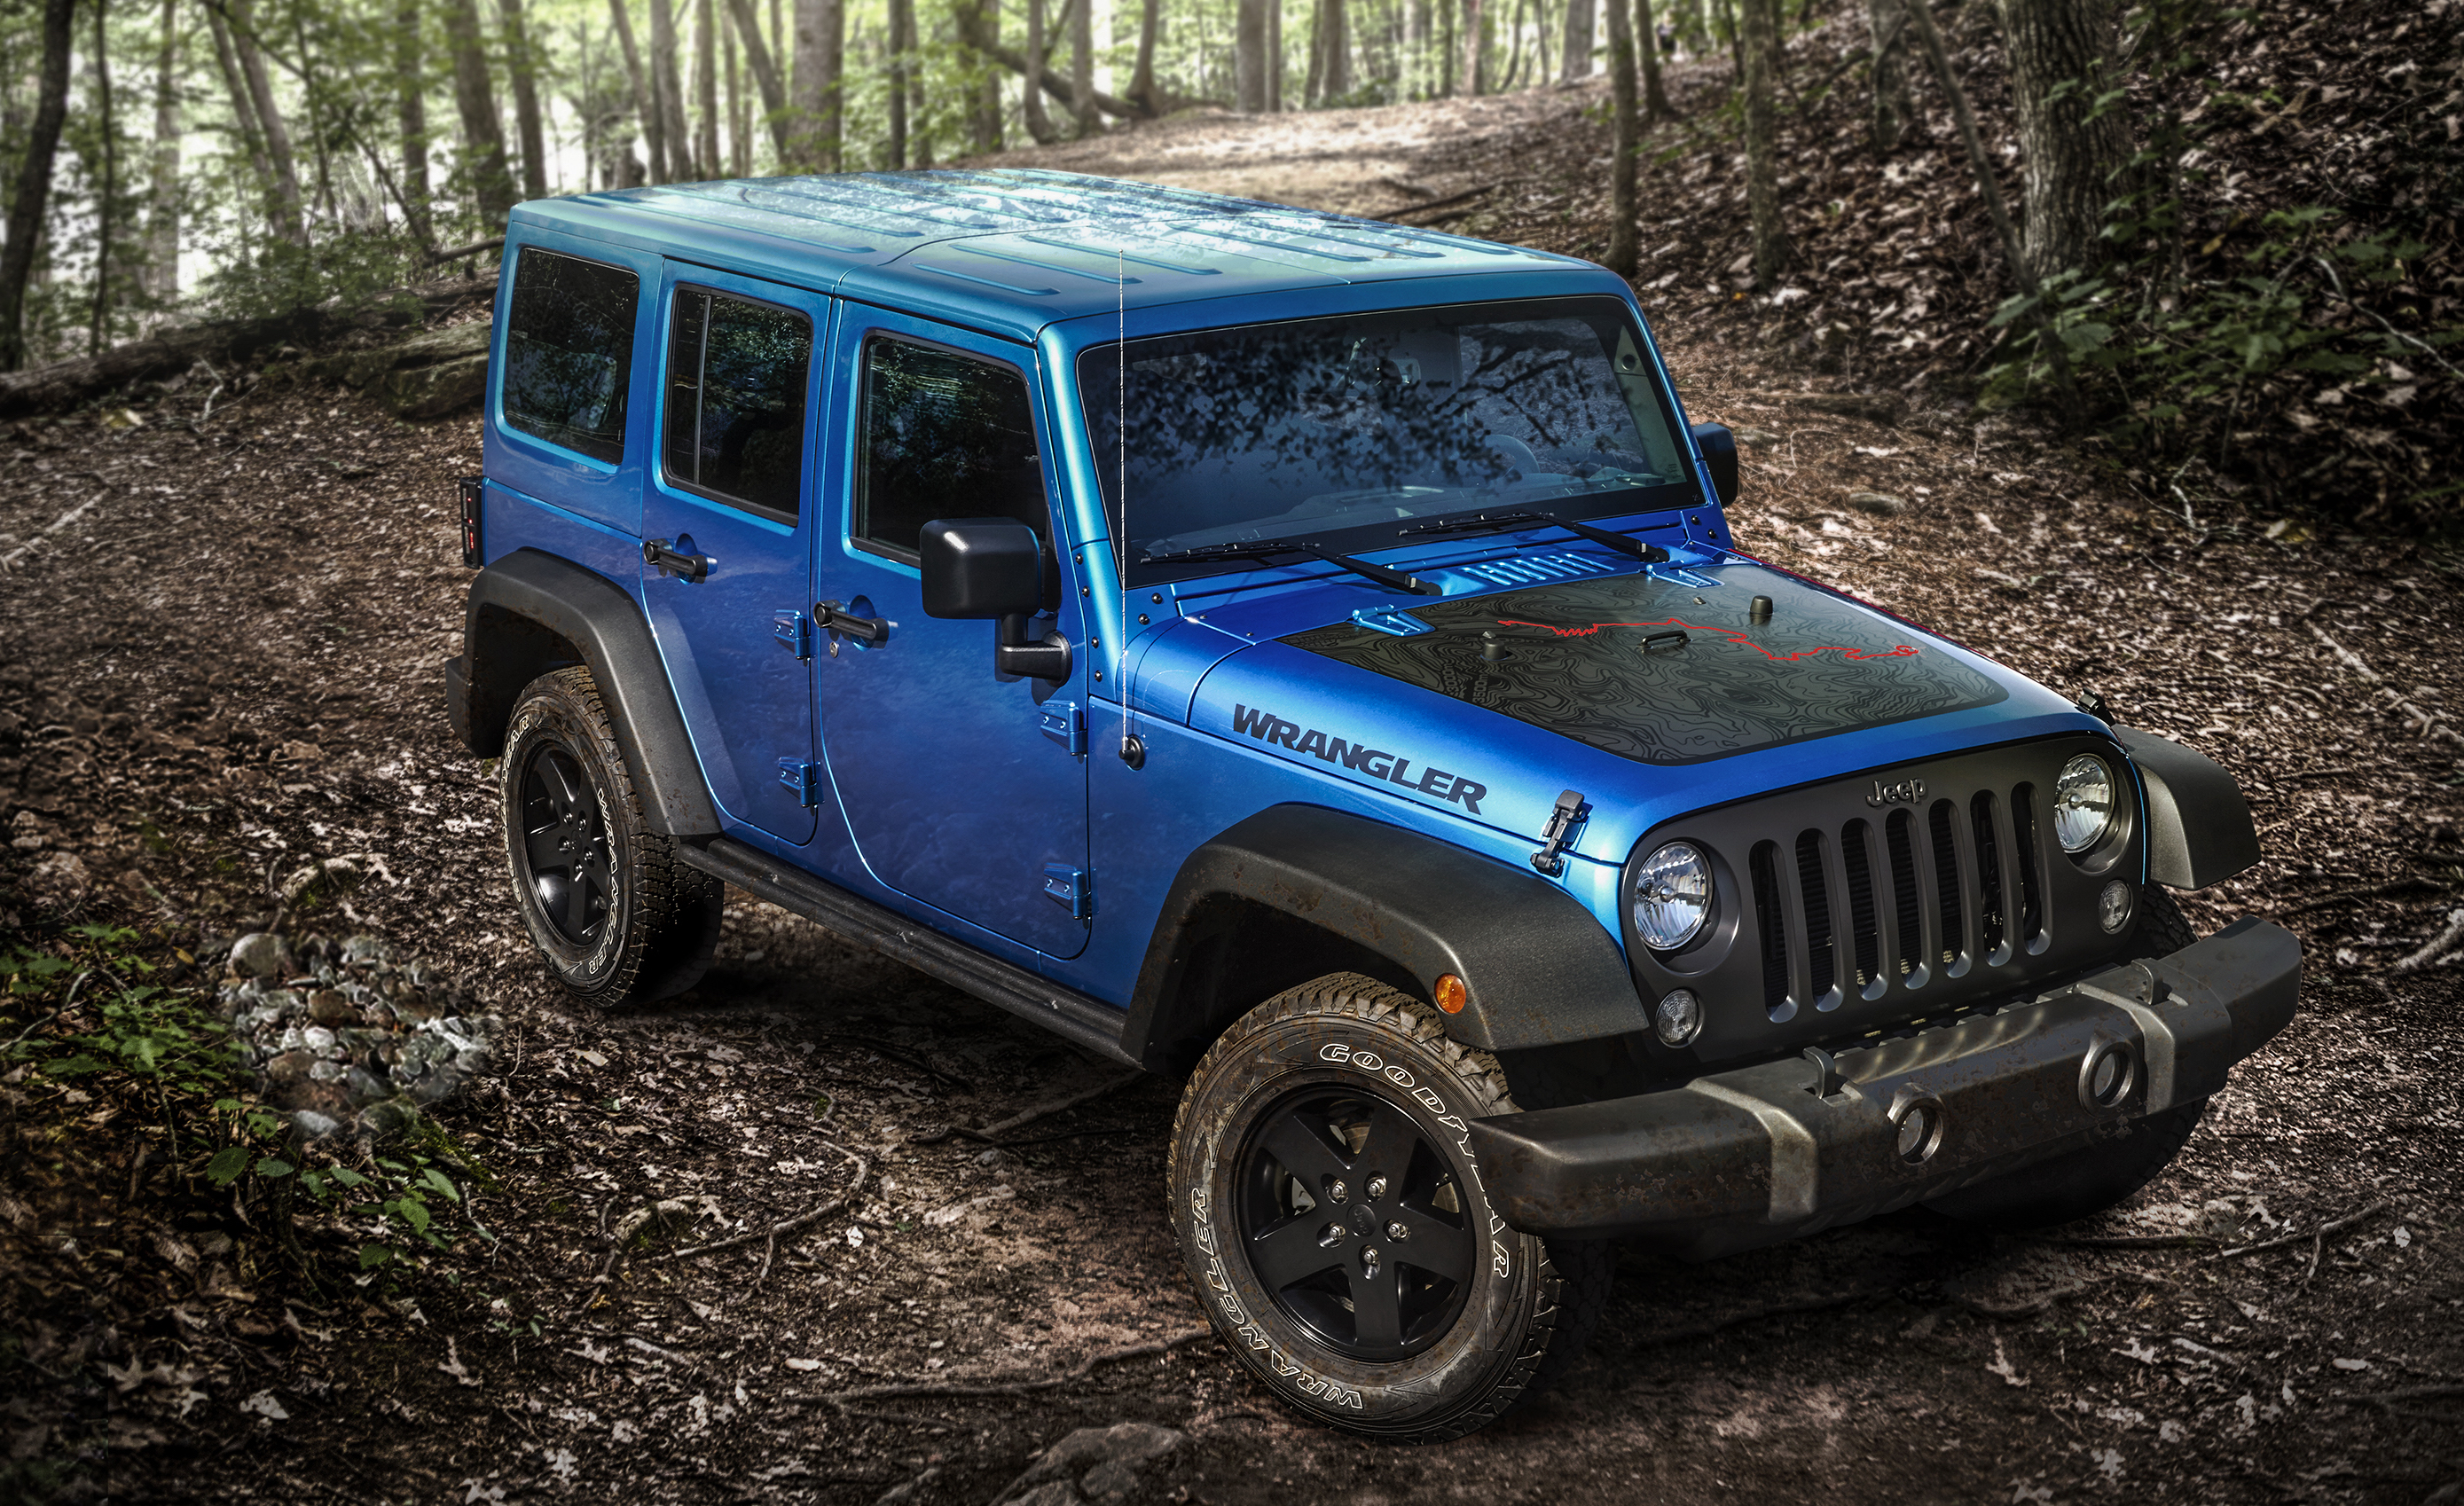 info cars the on price jl unlimited release new details news truck future date jeep wrangler